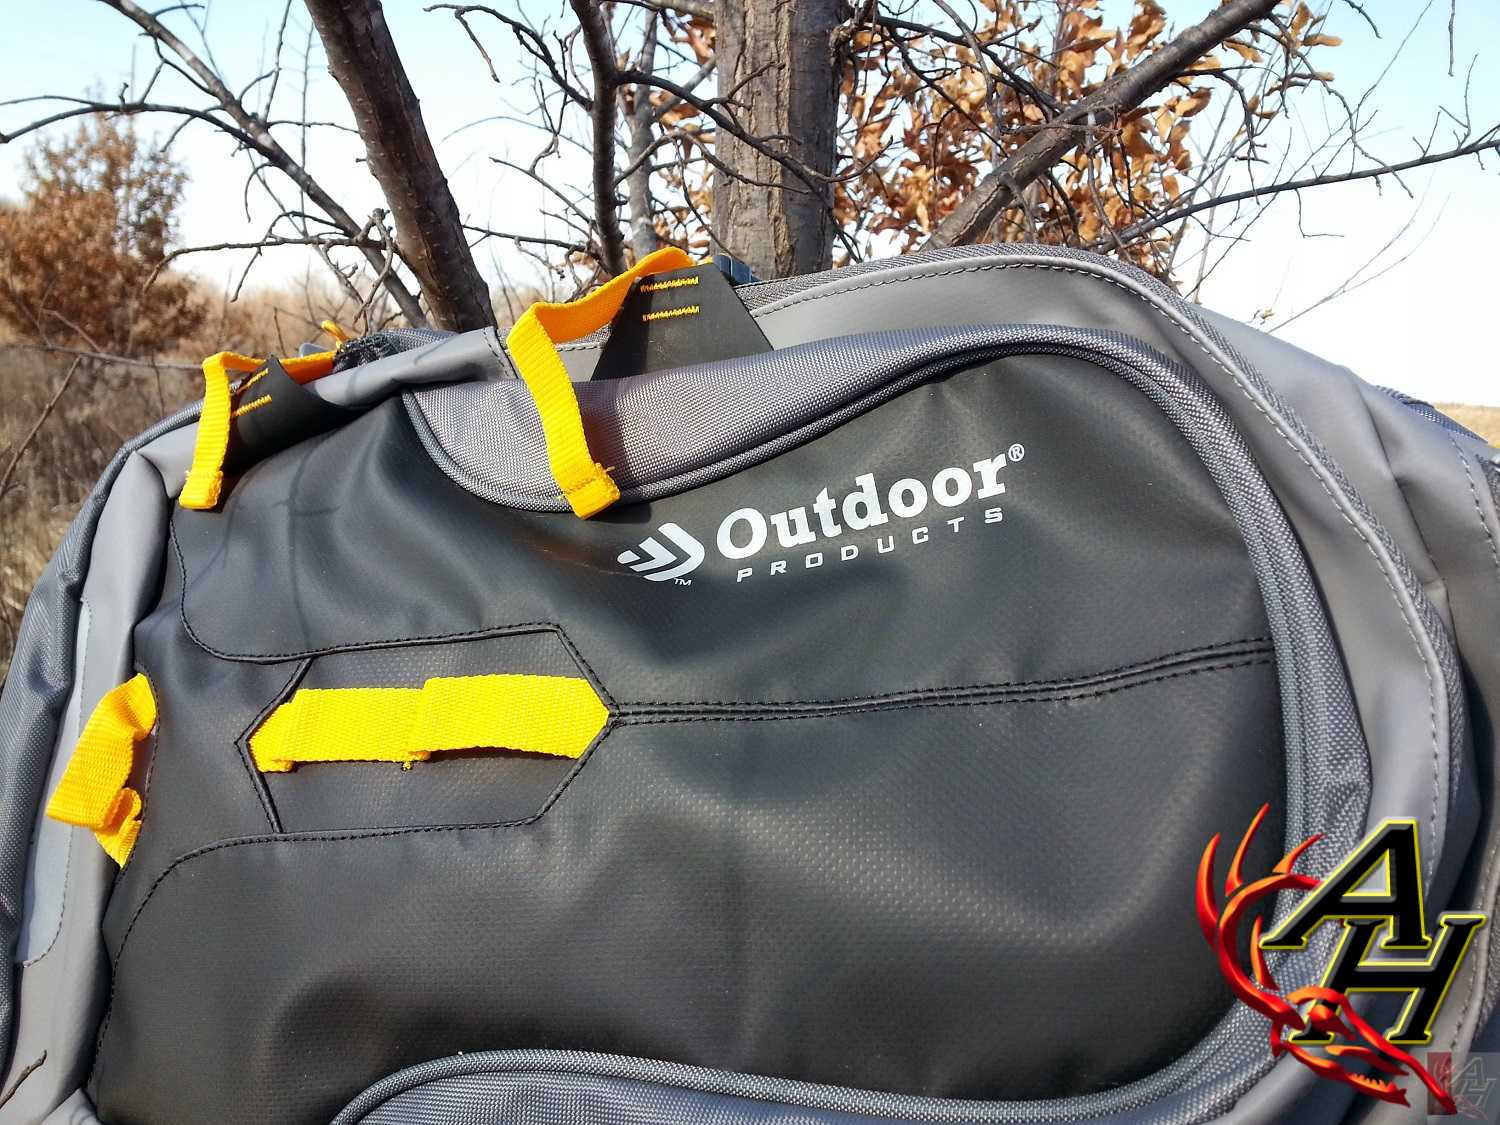 Outdoors Products Canyon Weather Defense Backpack Review